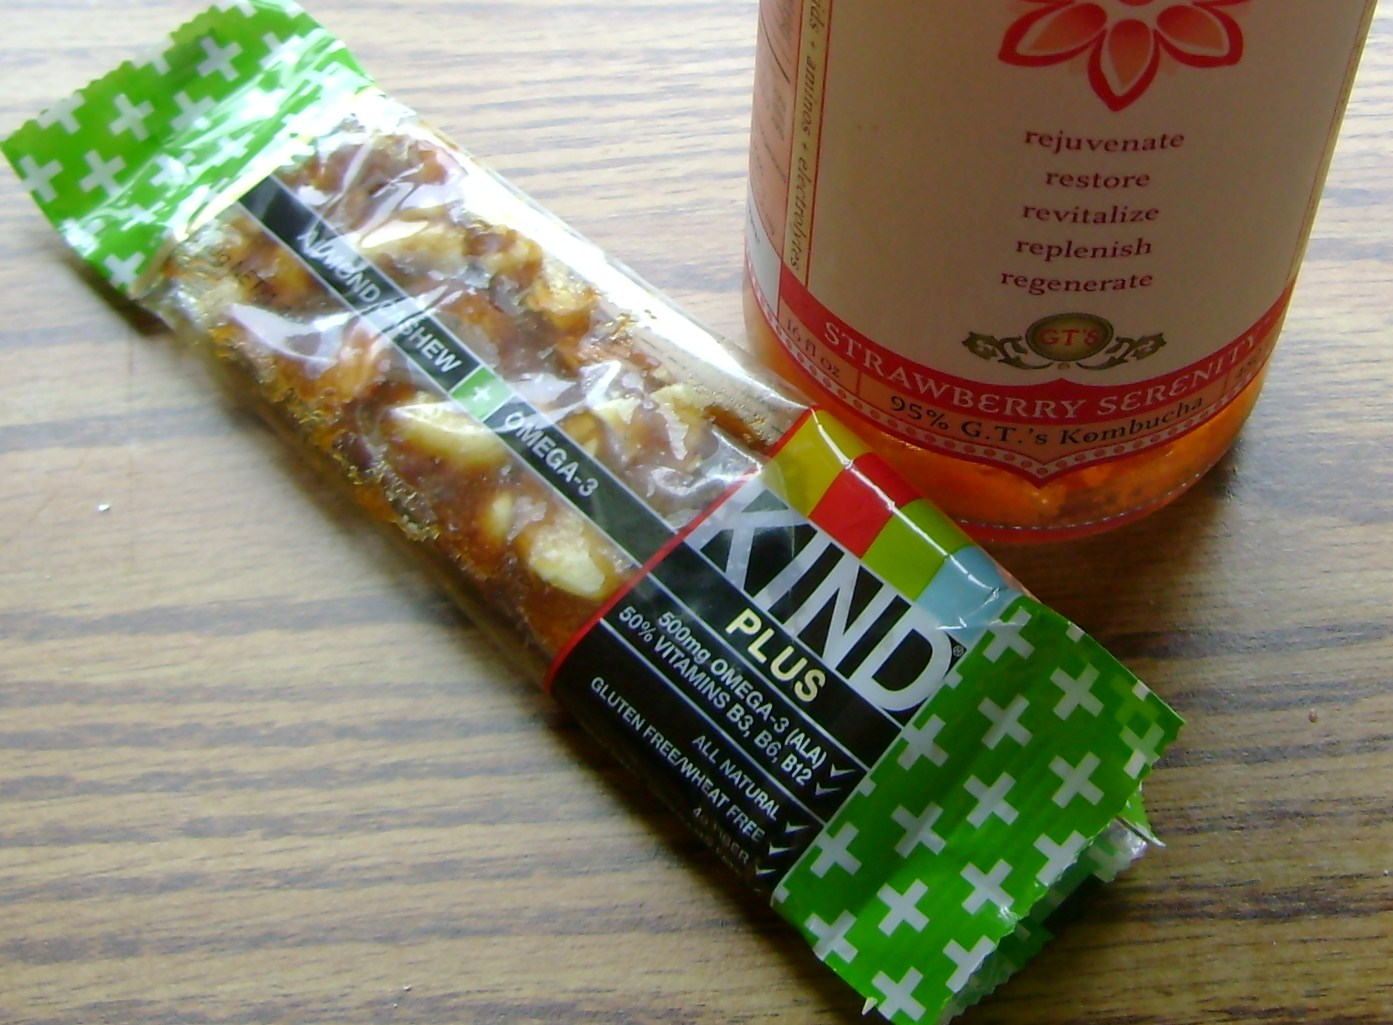 Cashew Almond KIND Bar And Strawberry Serenity Kombucha